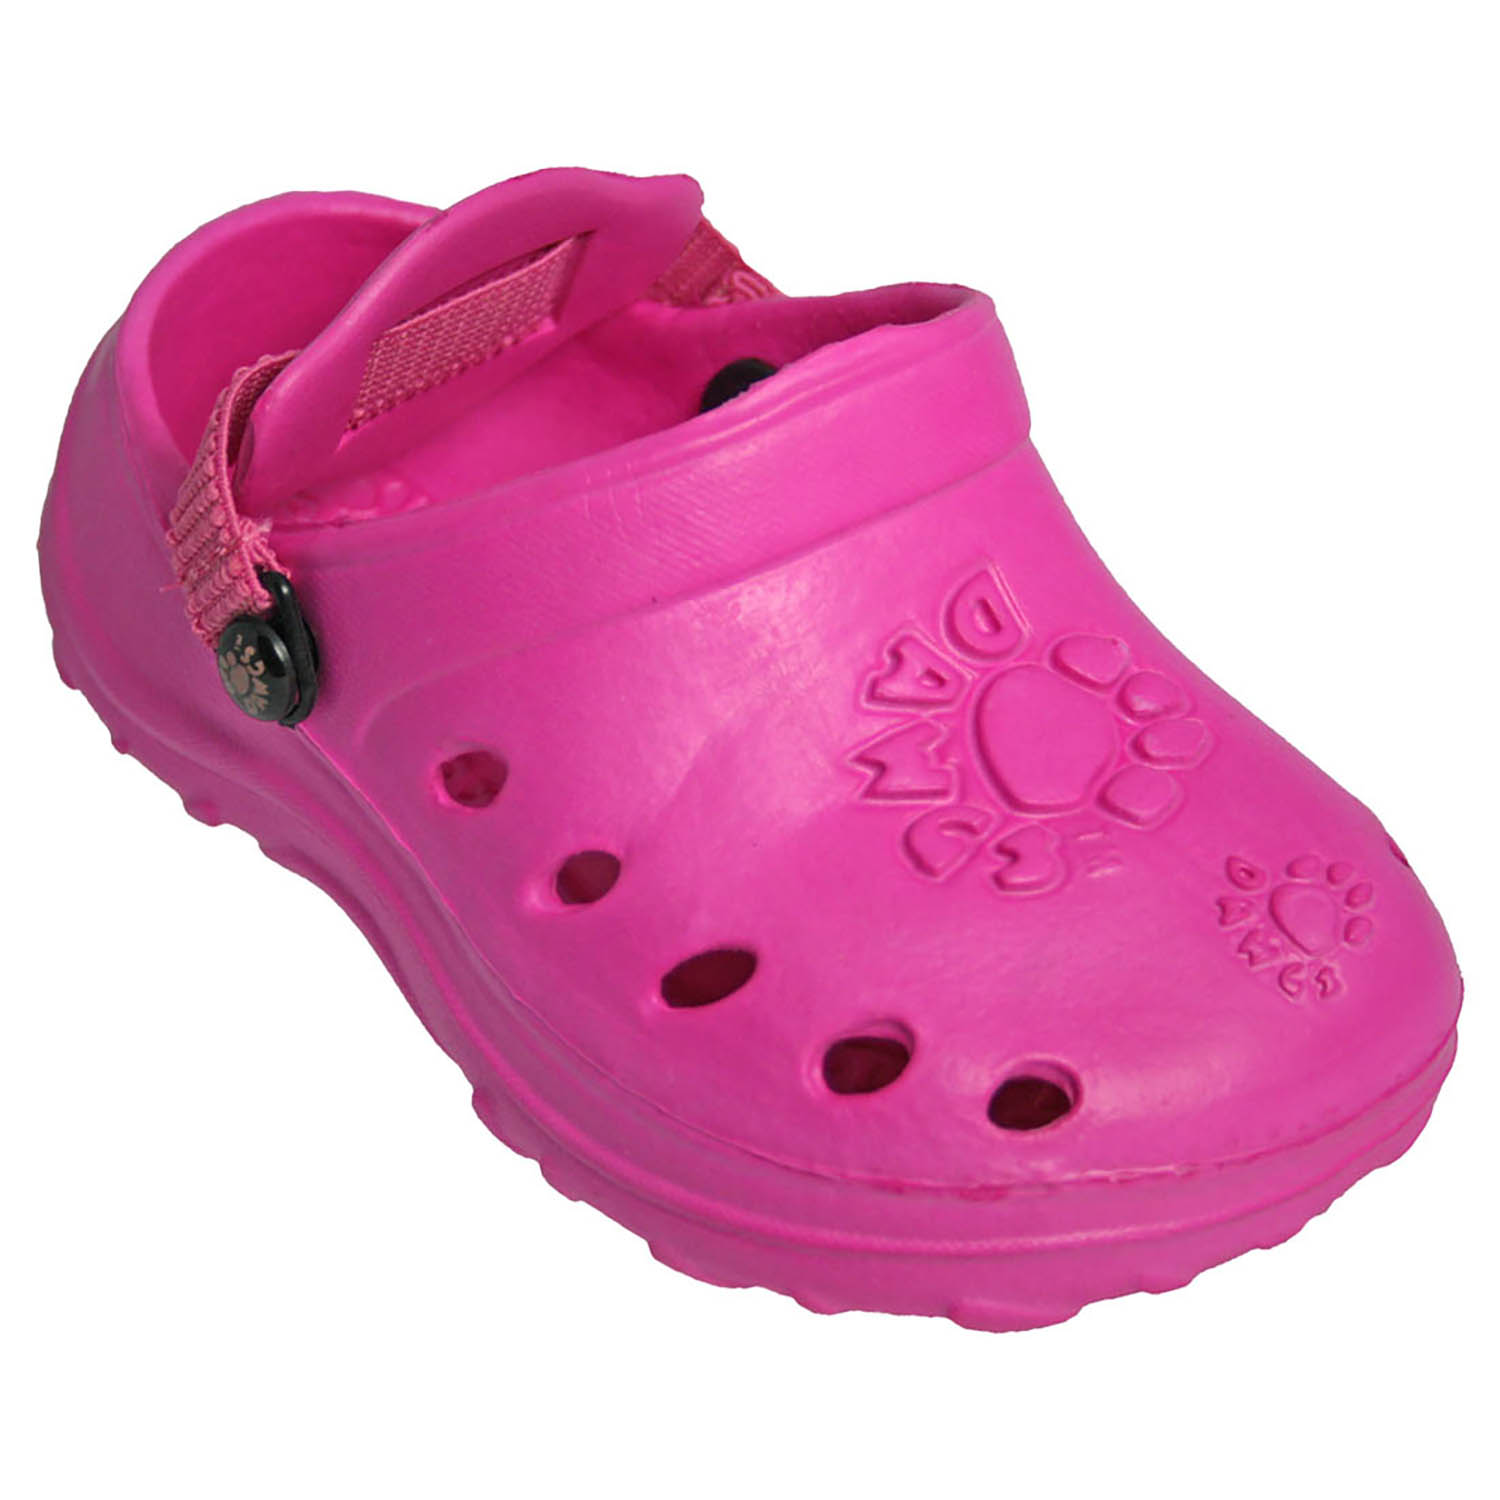 Toddlers' Dawgs Baby Dawgs Clogs Hot Pink Size 5